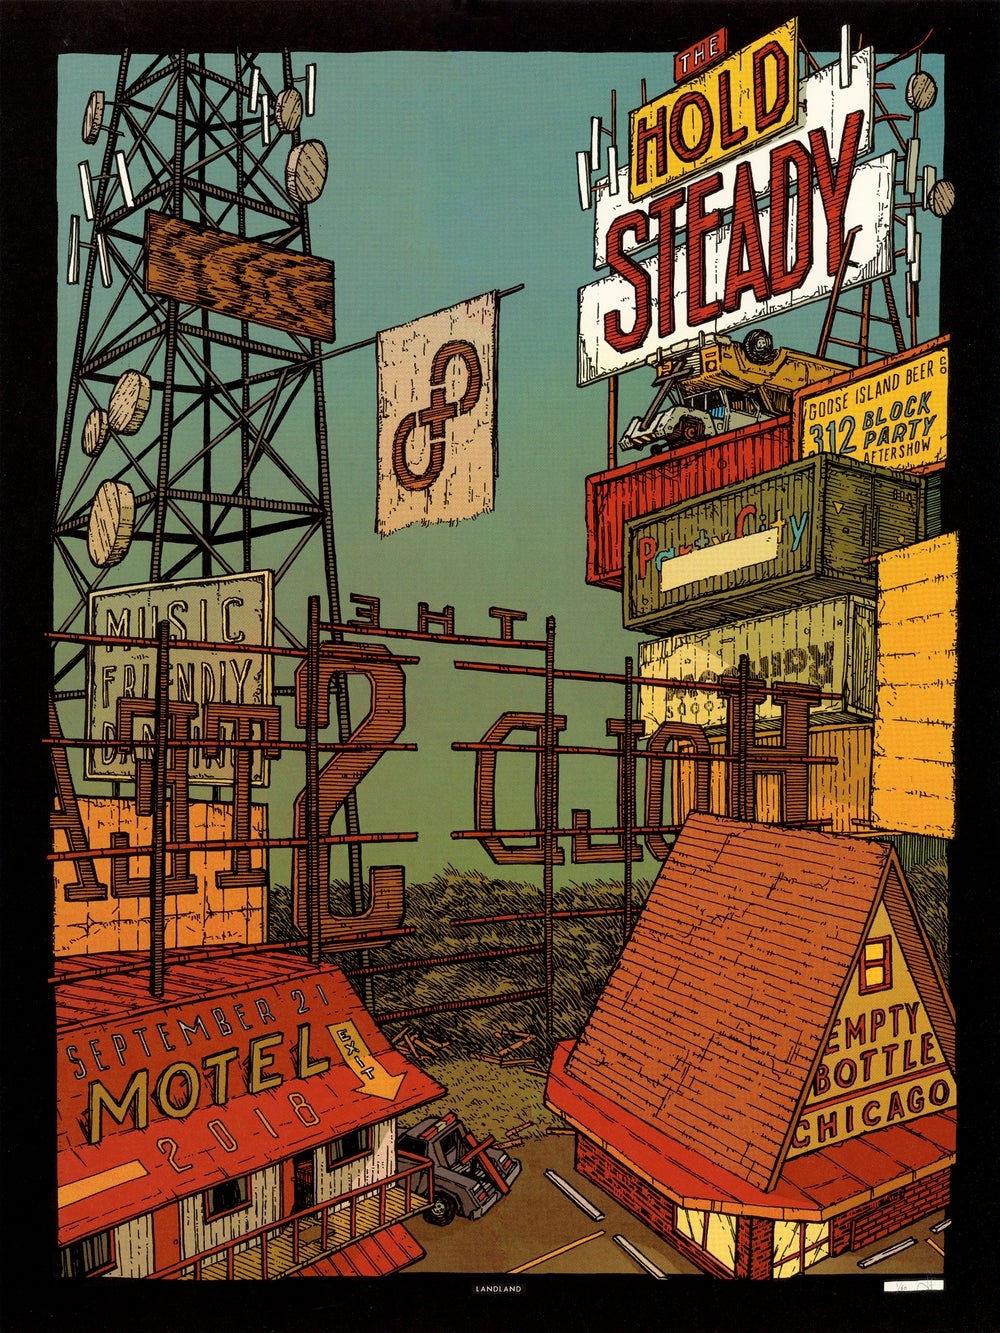 "The Hold Steady (Empty Bottle, Chicago) • Limited Edition Official Poster (18"" x 24"")"